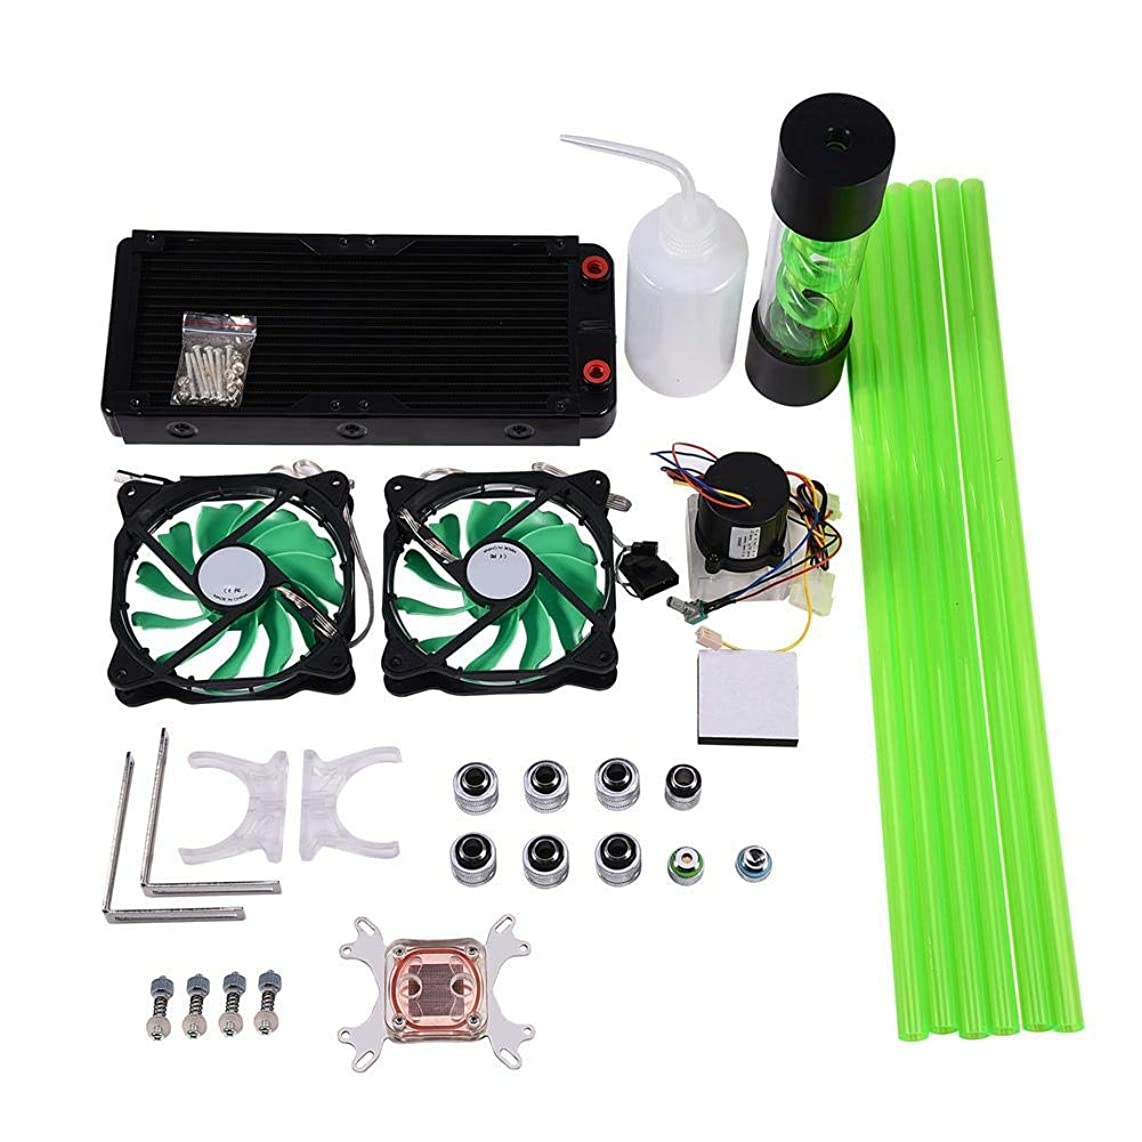 Computer Cooler,DIY 240mm Heat Sink CPU Water Block Pump Reservoir LED Fan Compputer Water Cooling Kit, Waterproof and Stable and Lower Noise